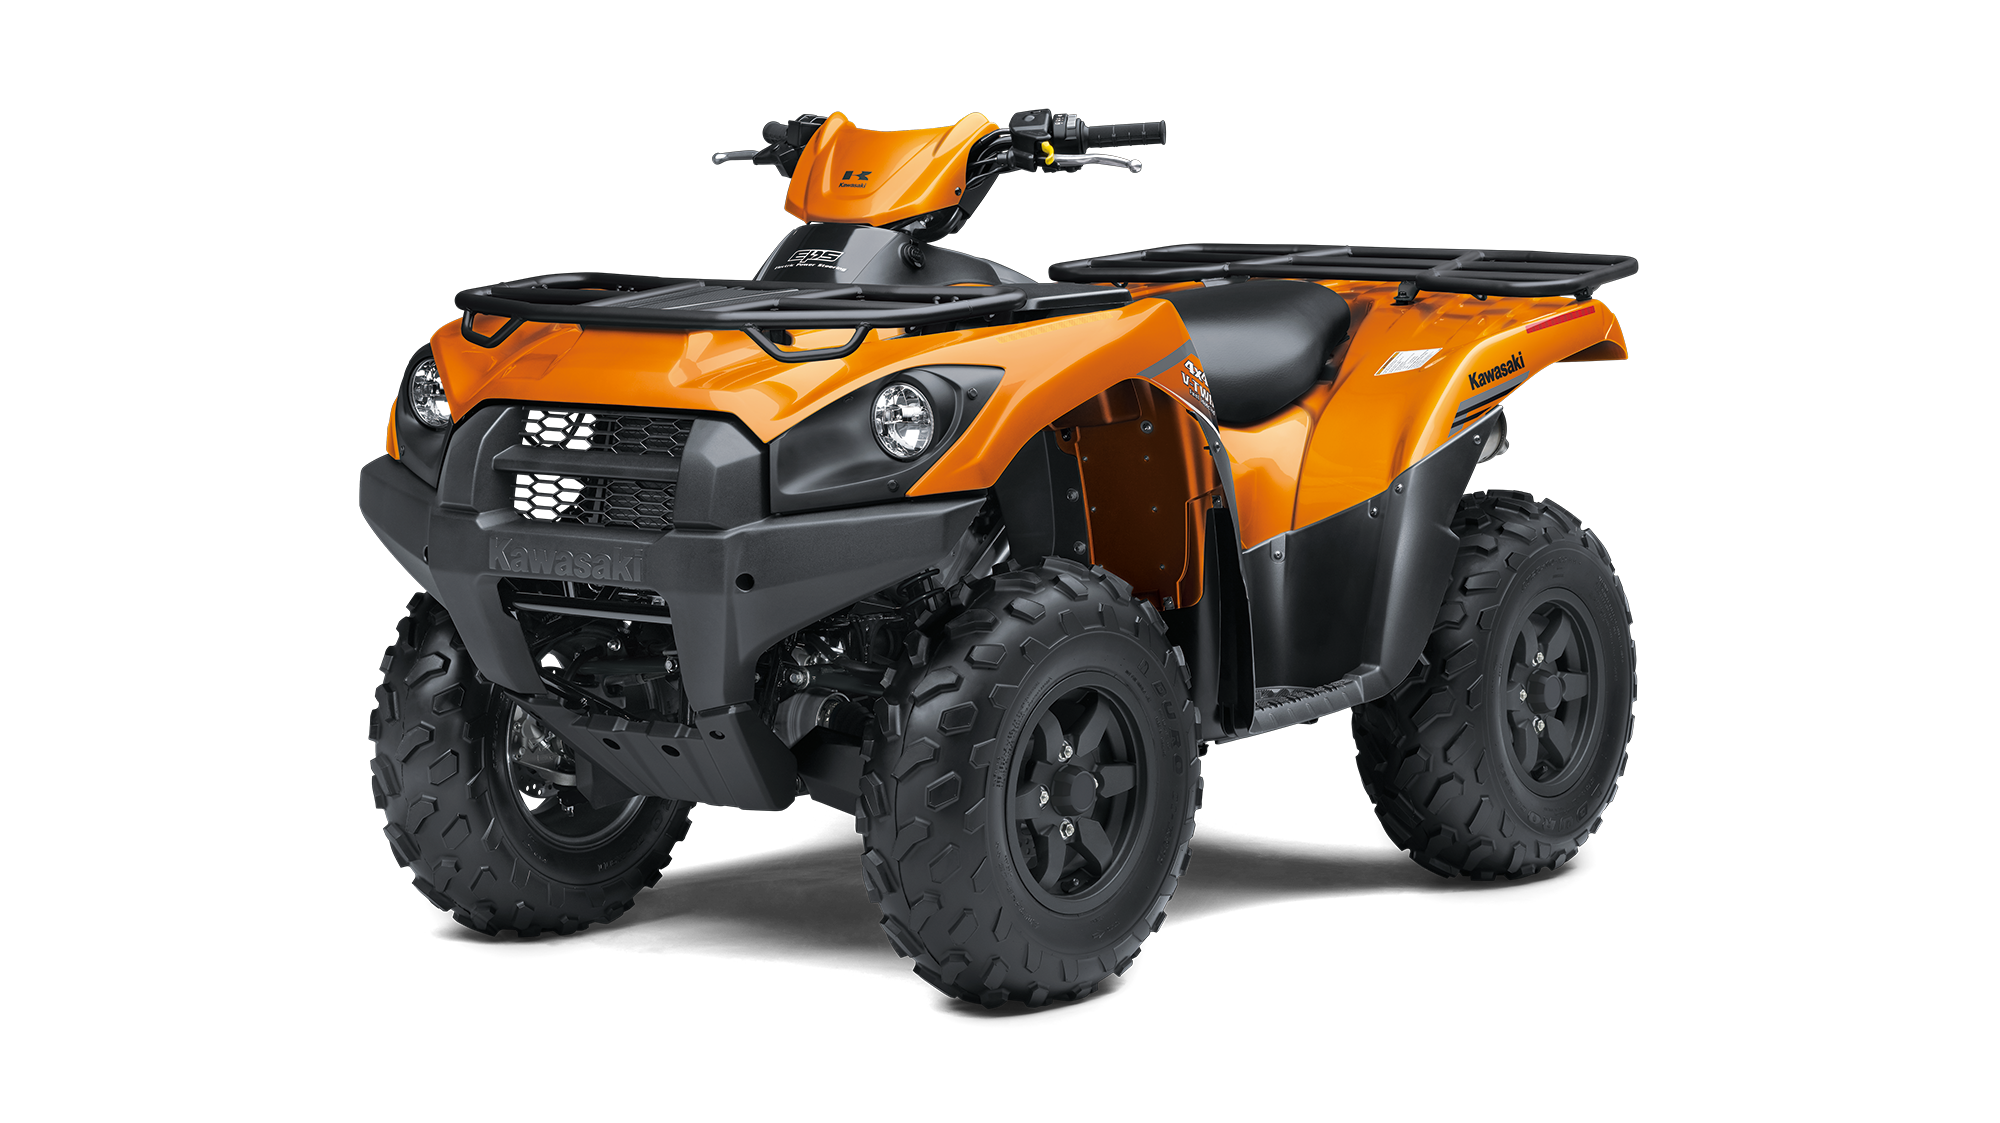 2020 brute force� 750 4x4i eps brute force� atv by kawasaki 2006 Kawasaki Brute Force 750 Wiring Diagram